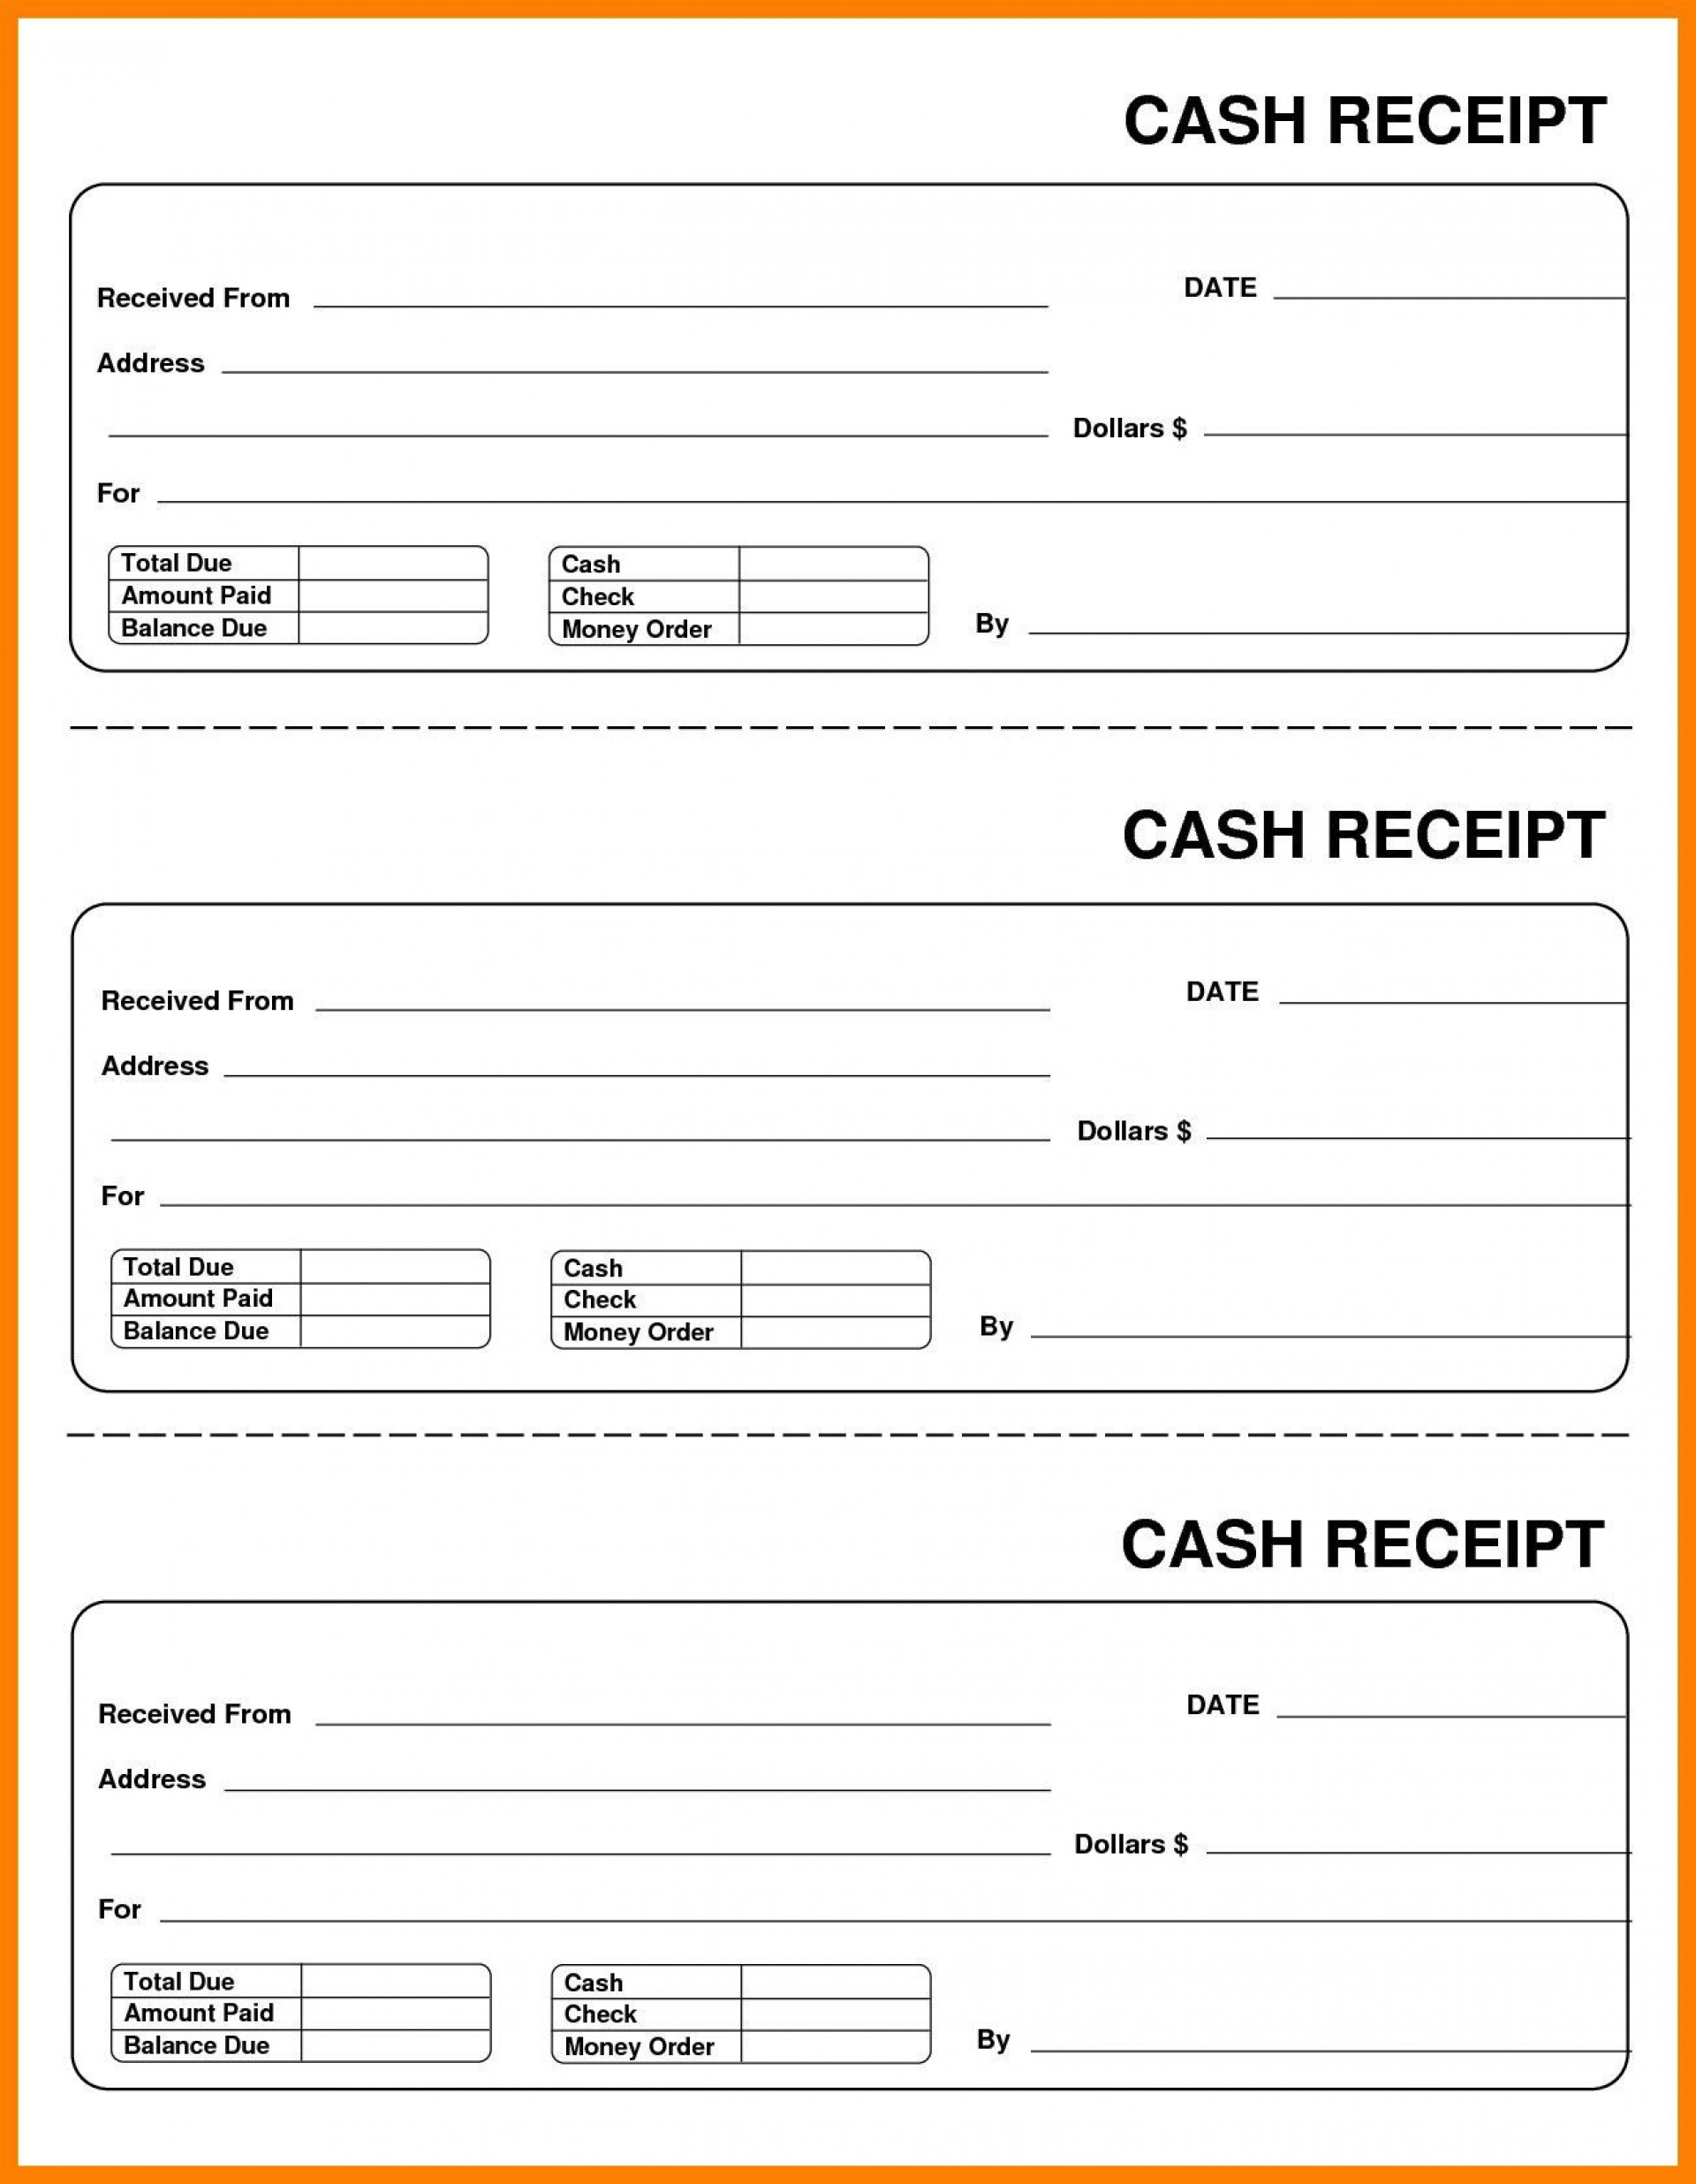 001 Frightening Cash Receipt Template Excel Idea  Fillable Simple Bill Journal1920